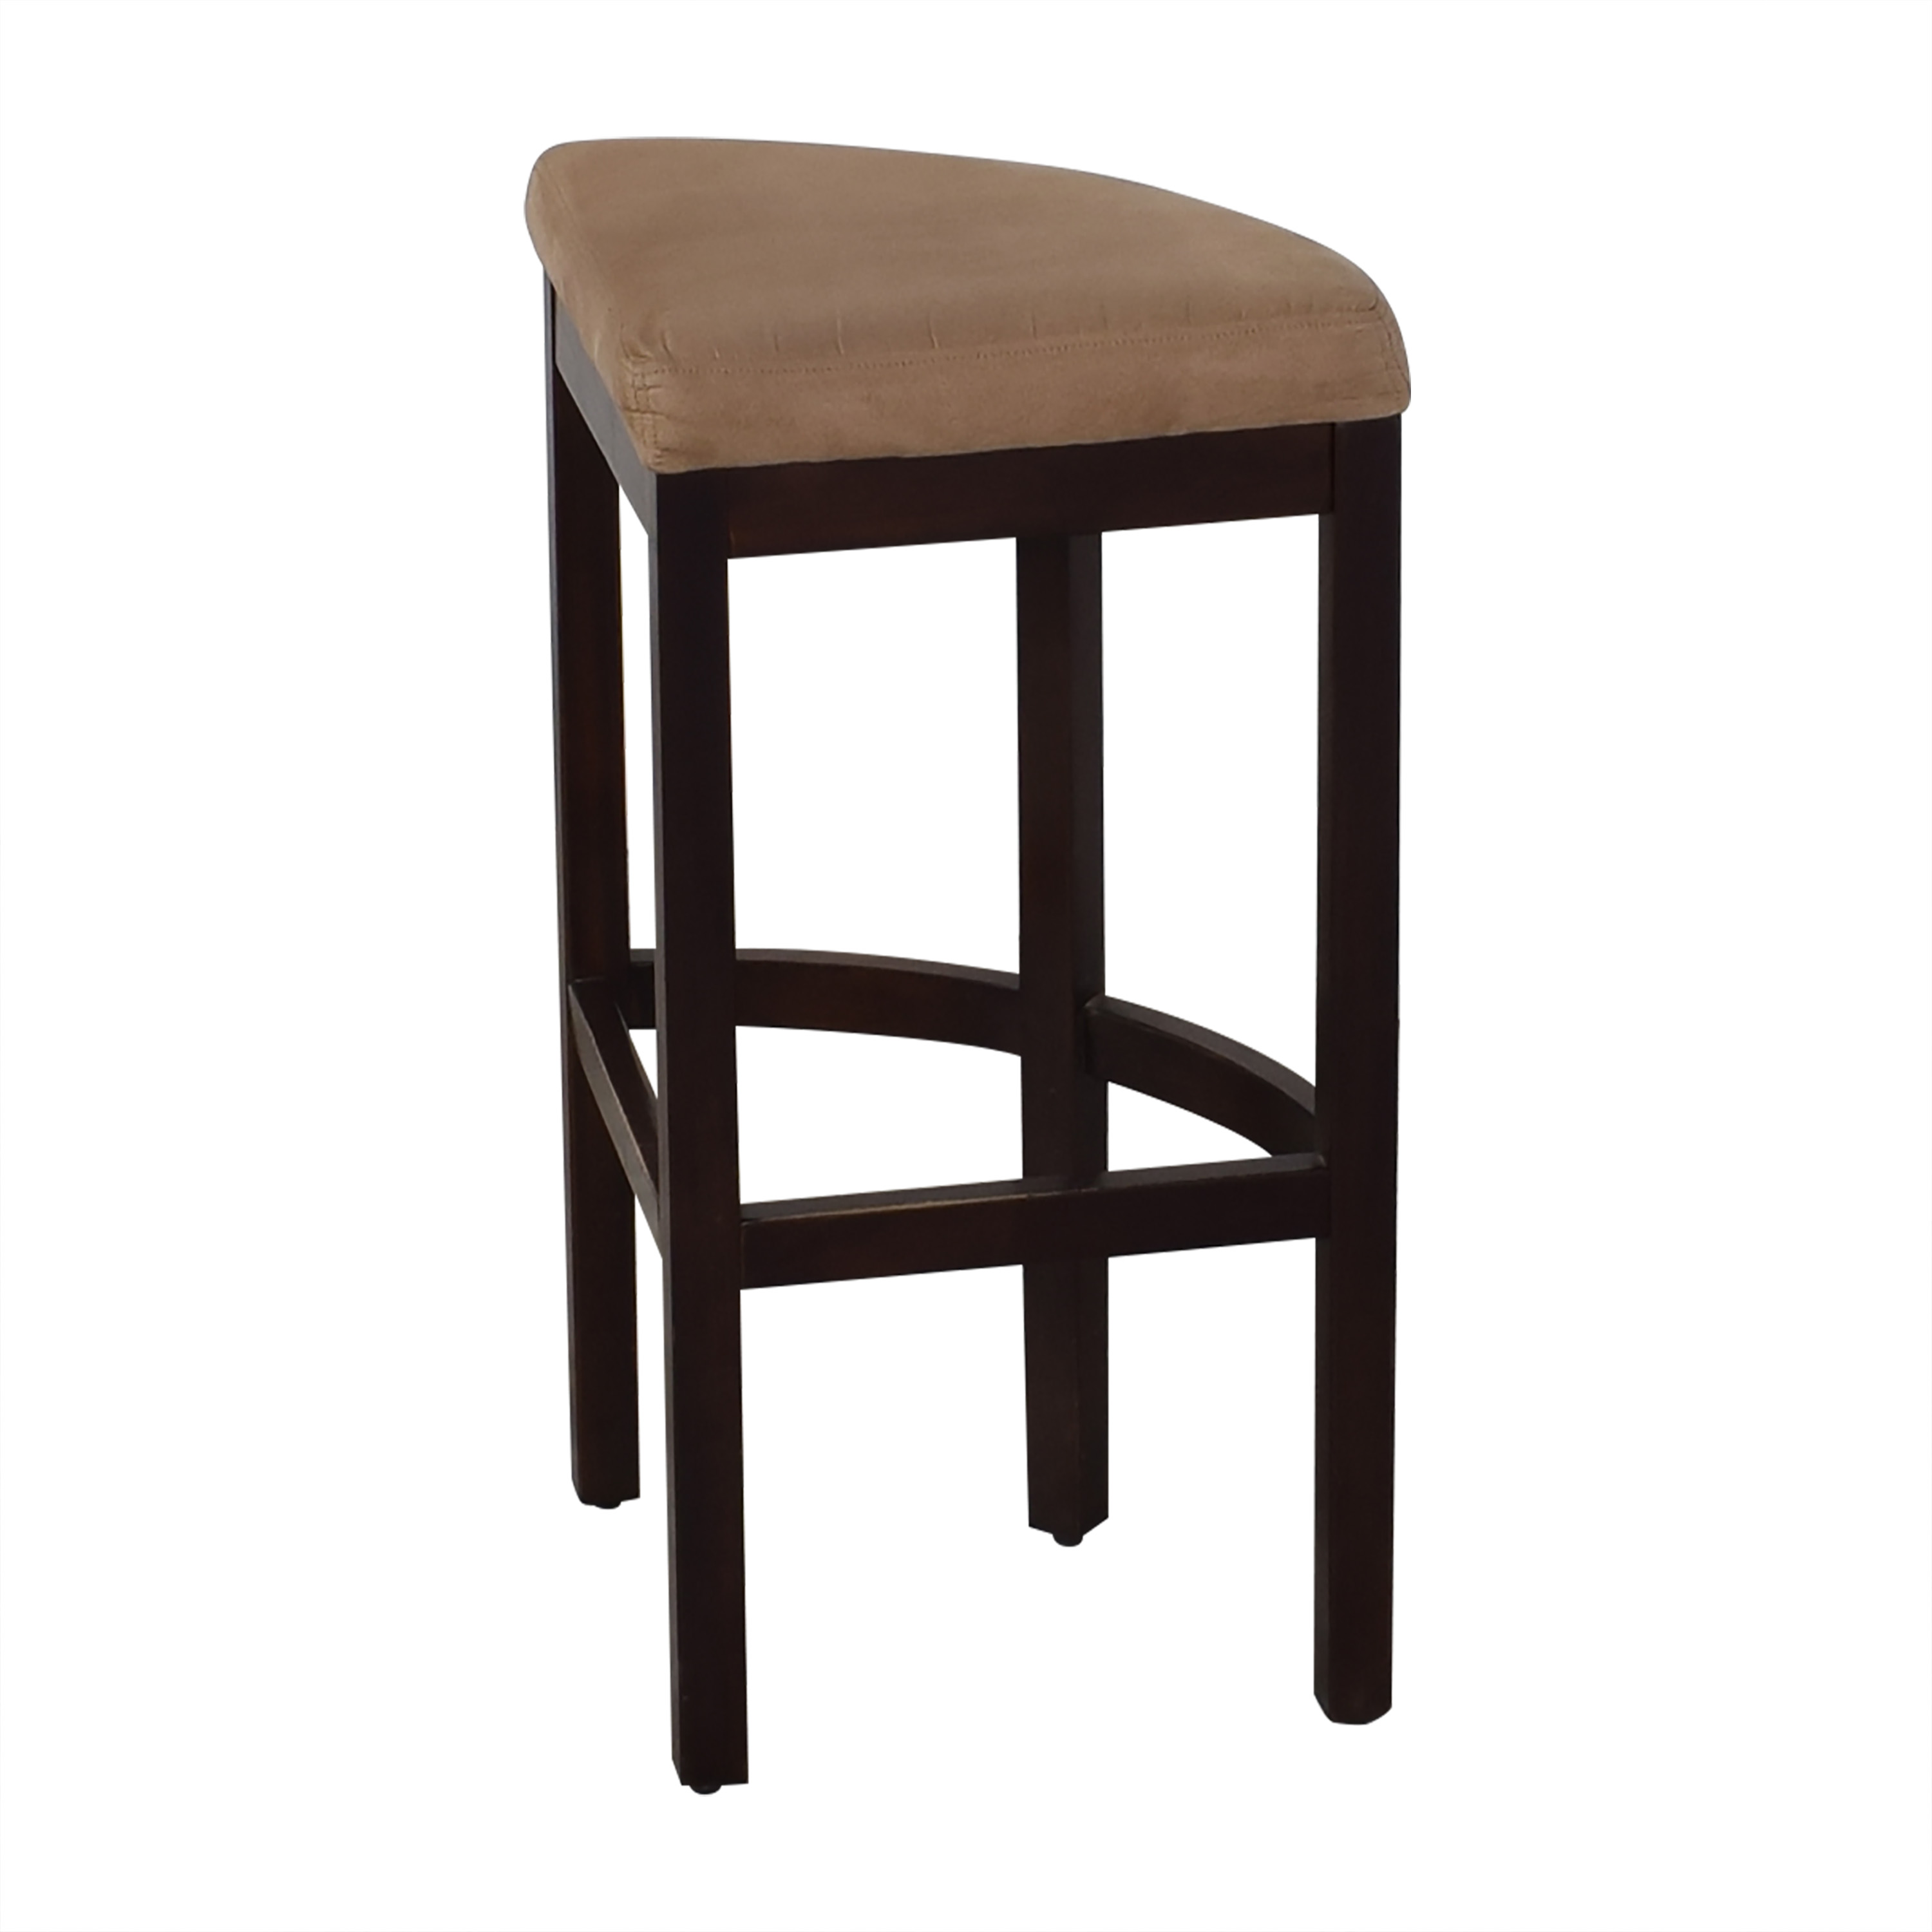 buy Raymour & Flanigan Round Table and Stools Raymour & Flanigan Tables